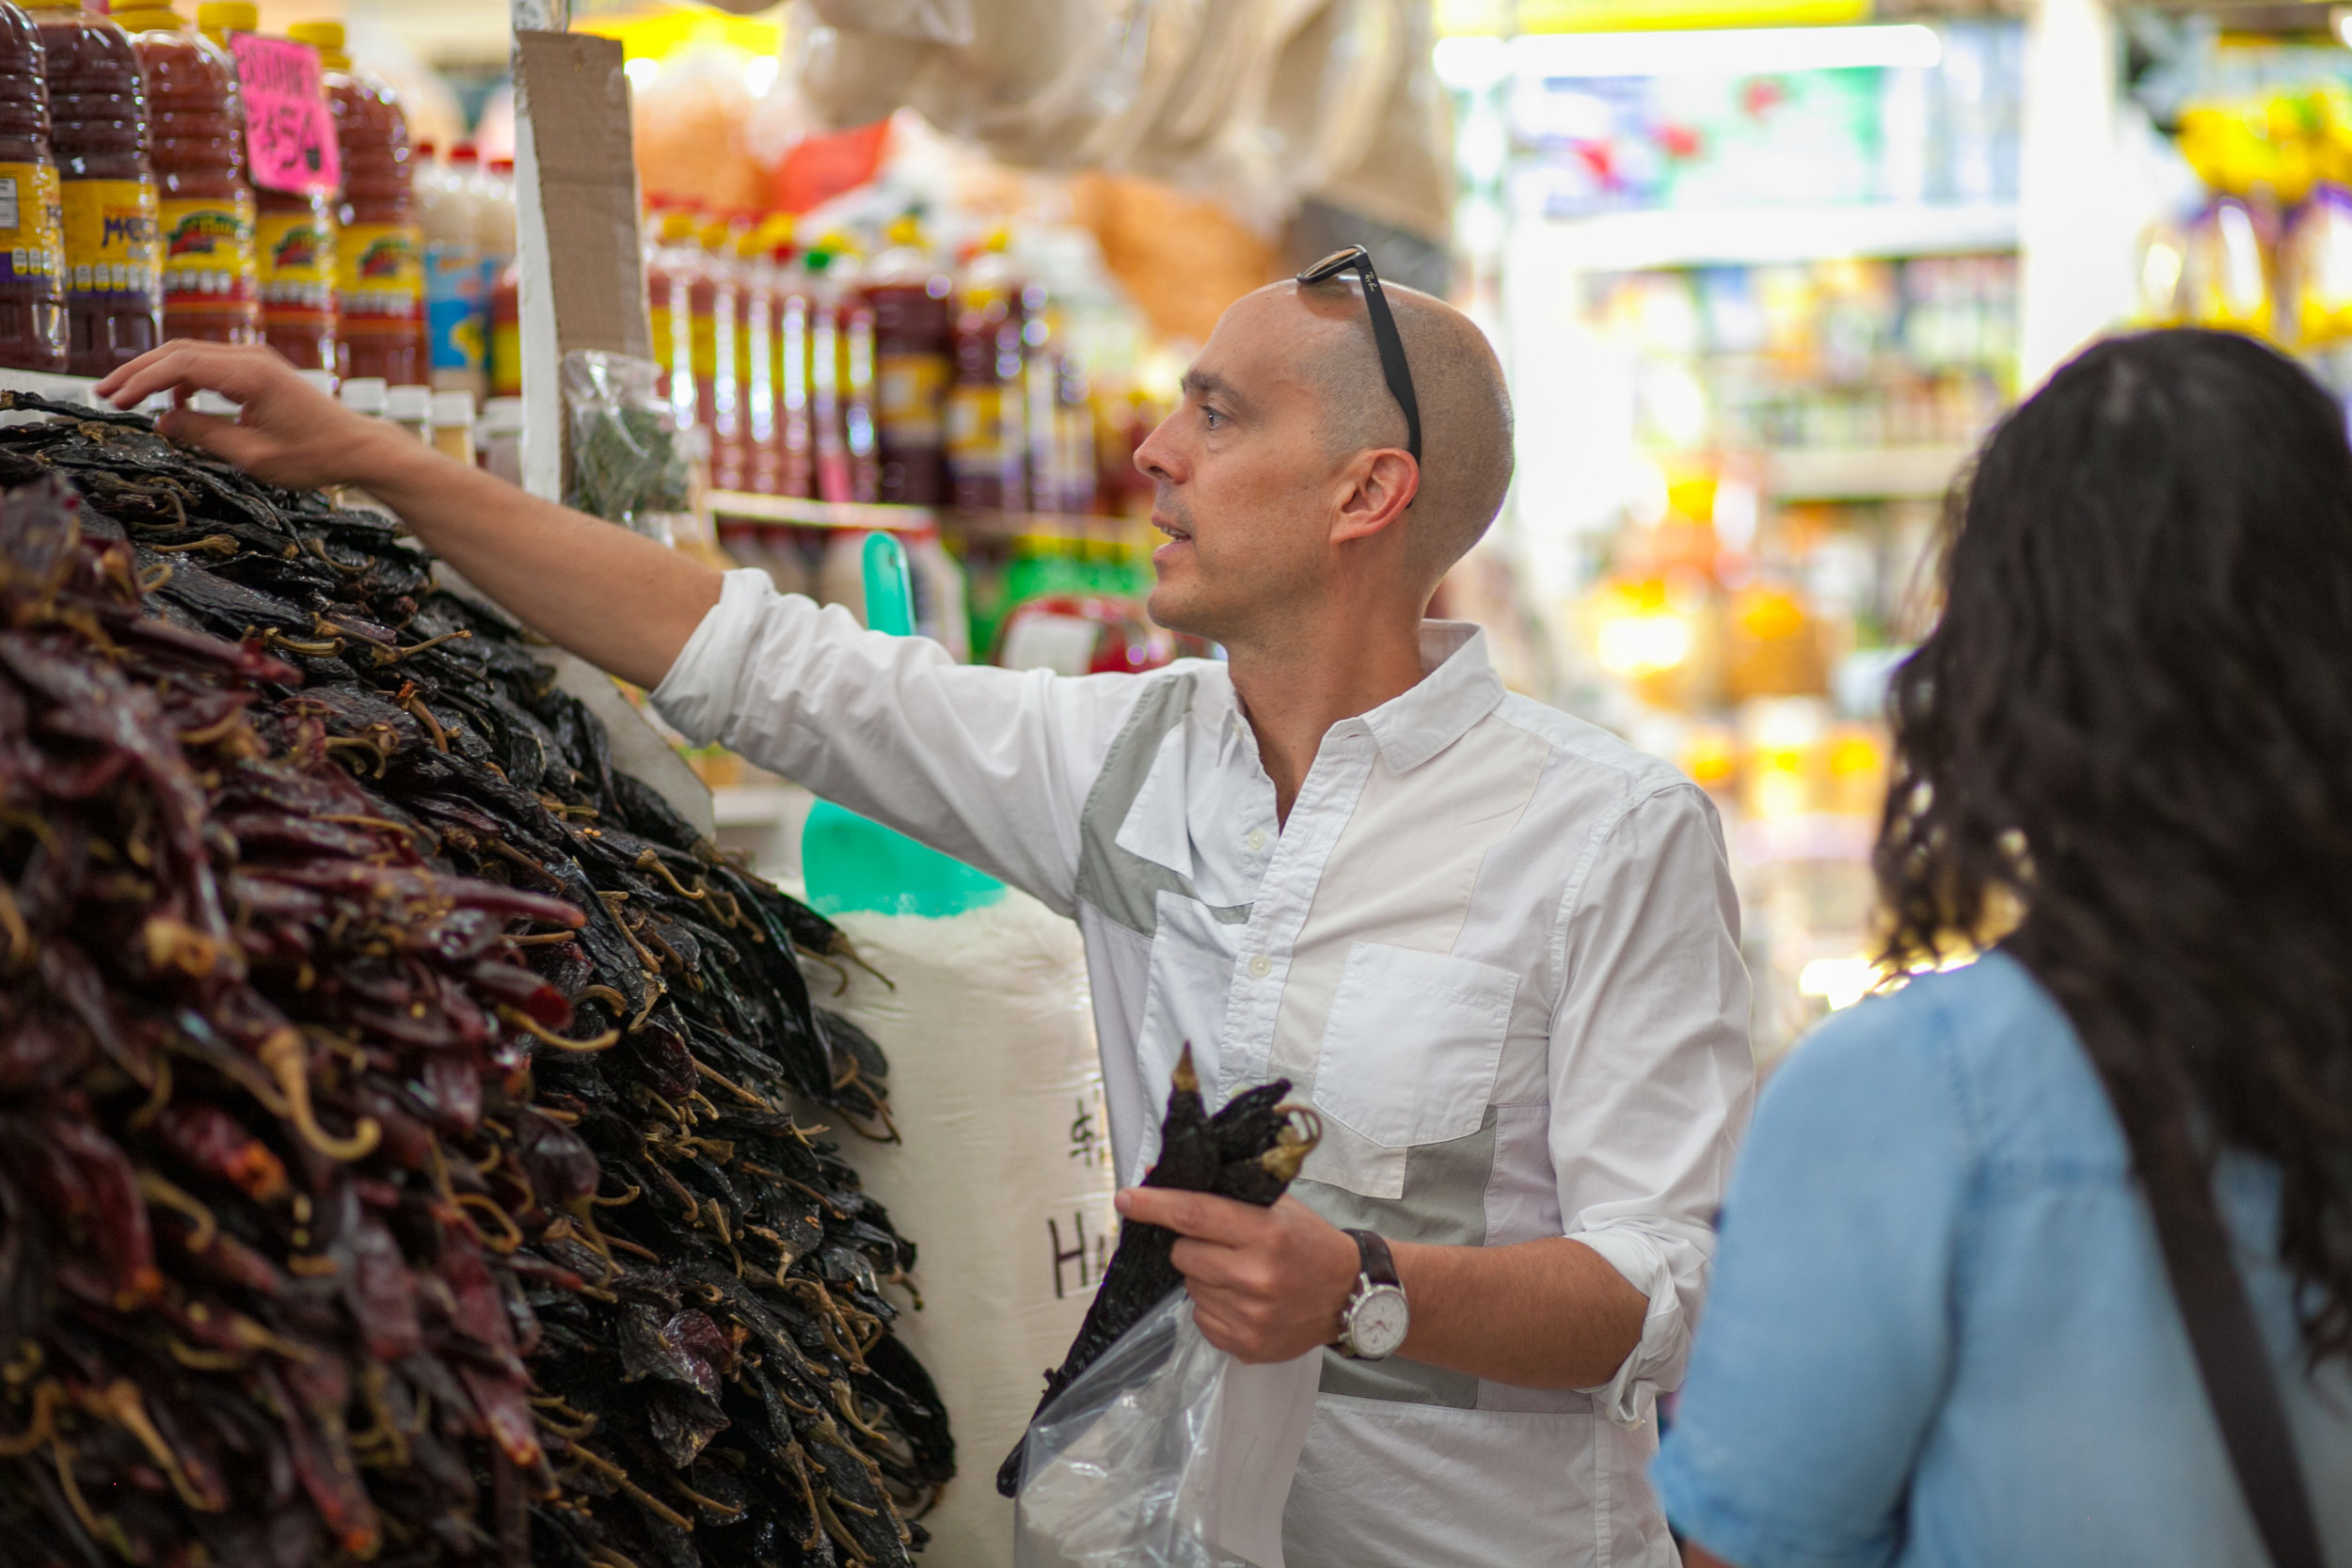 shopping for chilis at a market in Mexico City